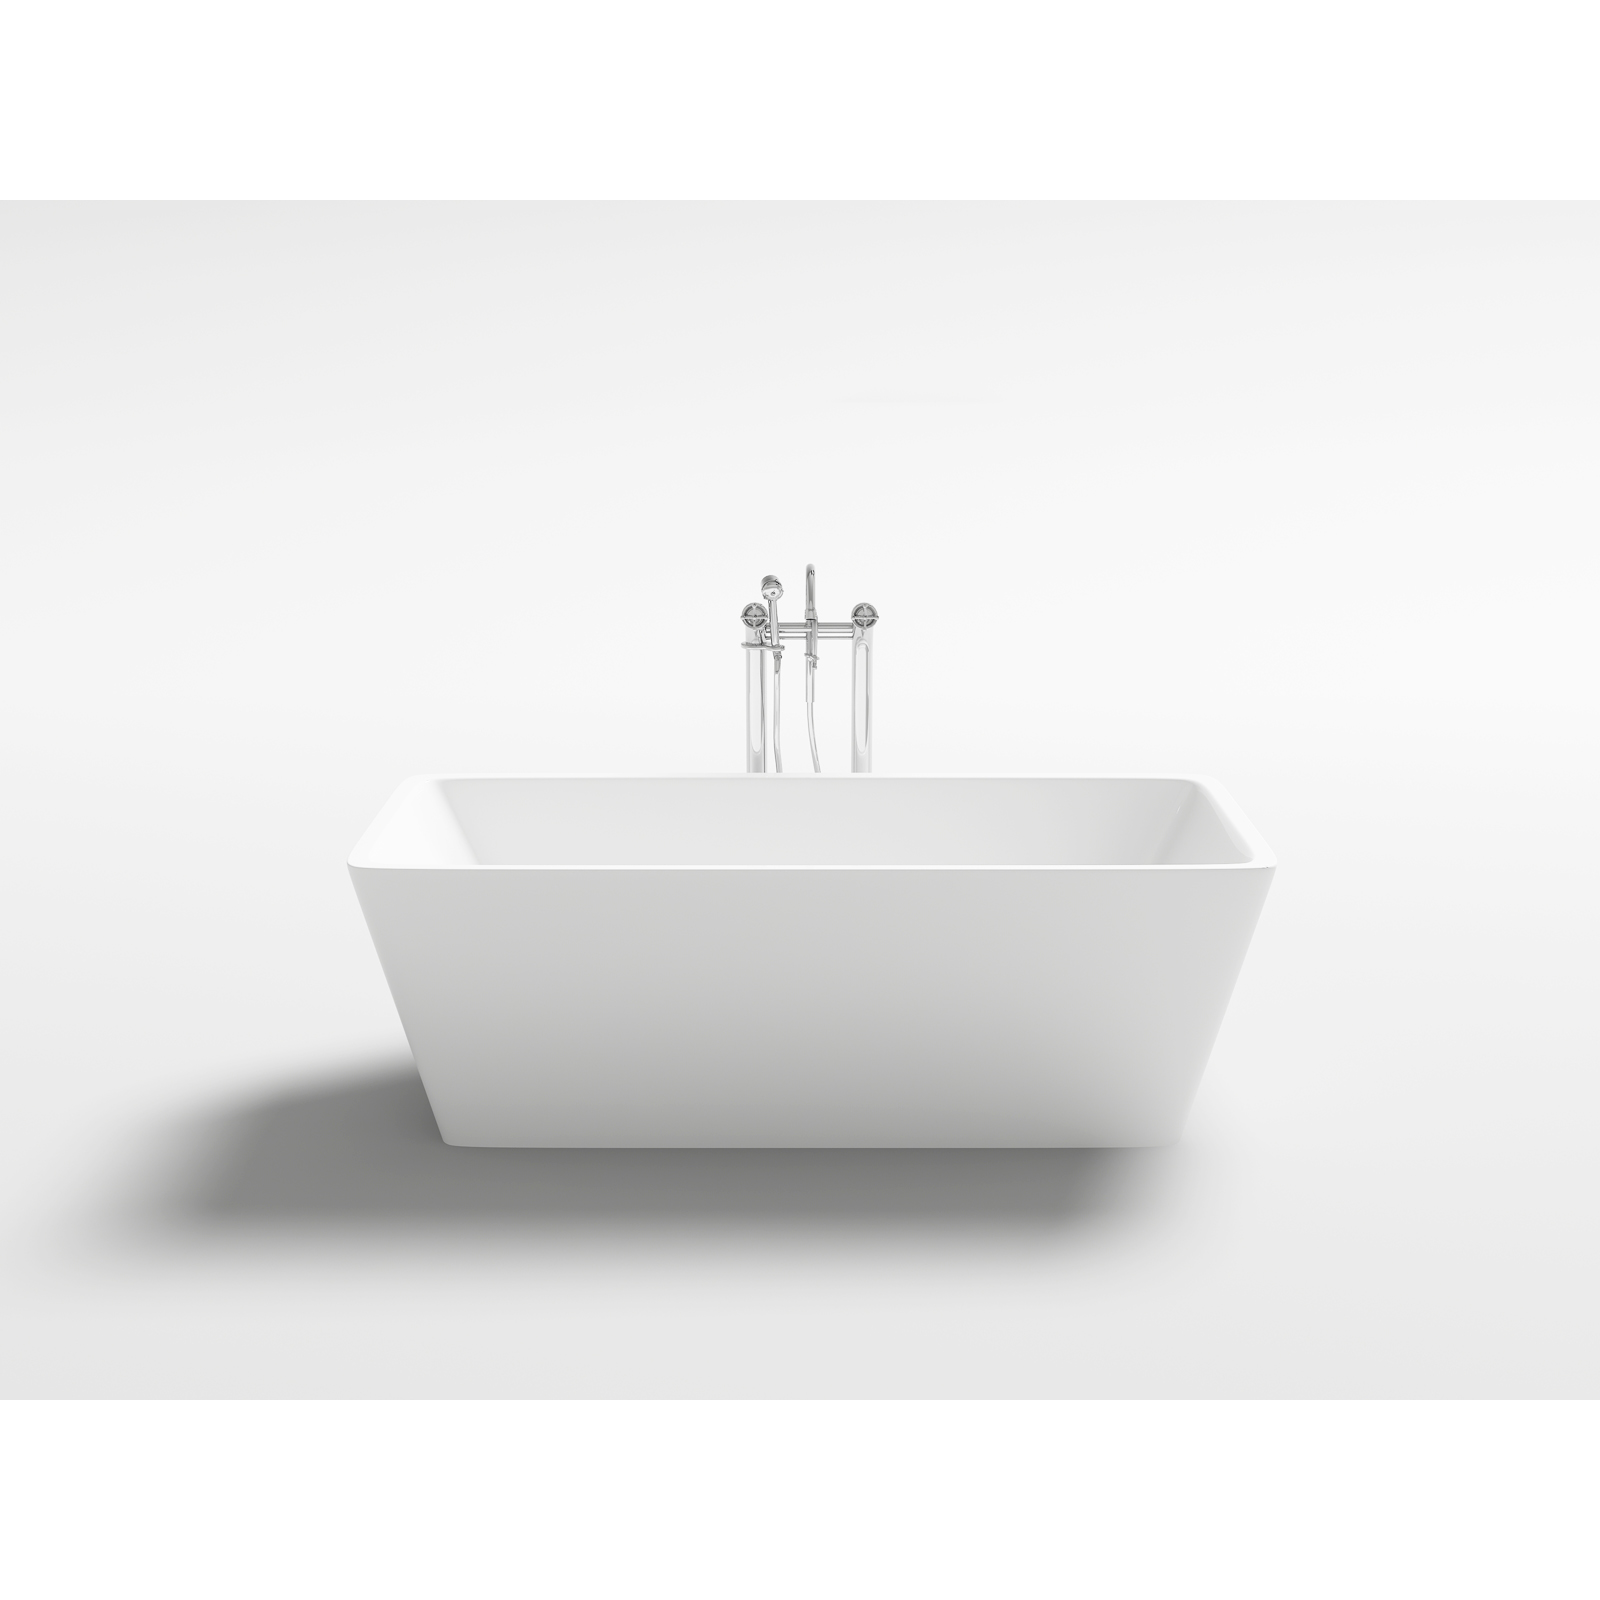 details about white square bath tub acrylic freestanding 1500x750x580